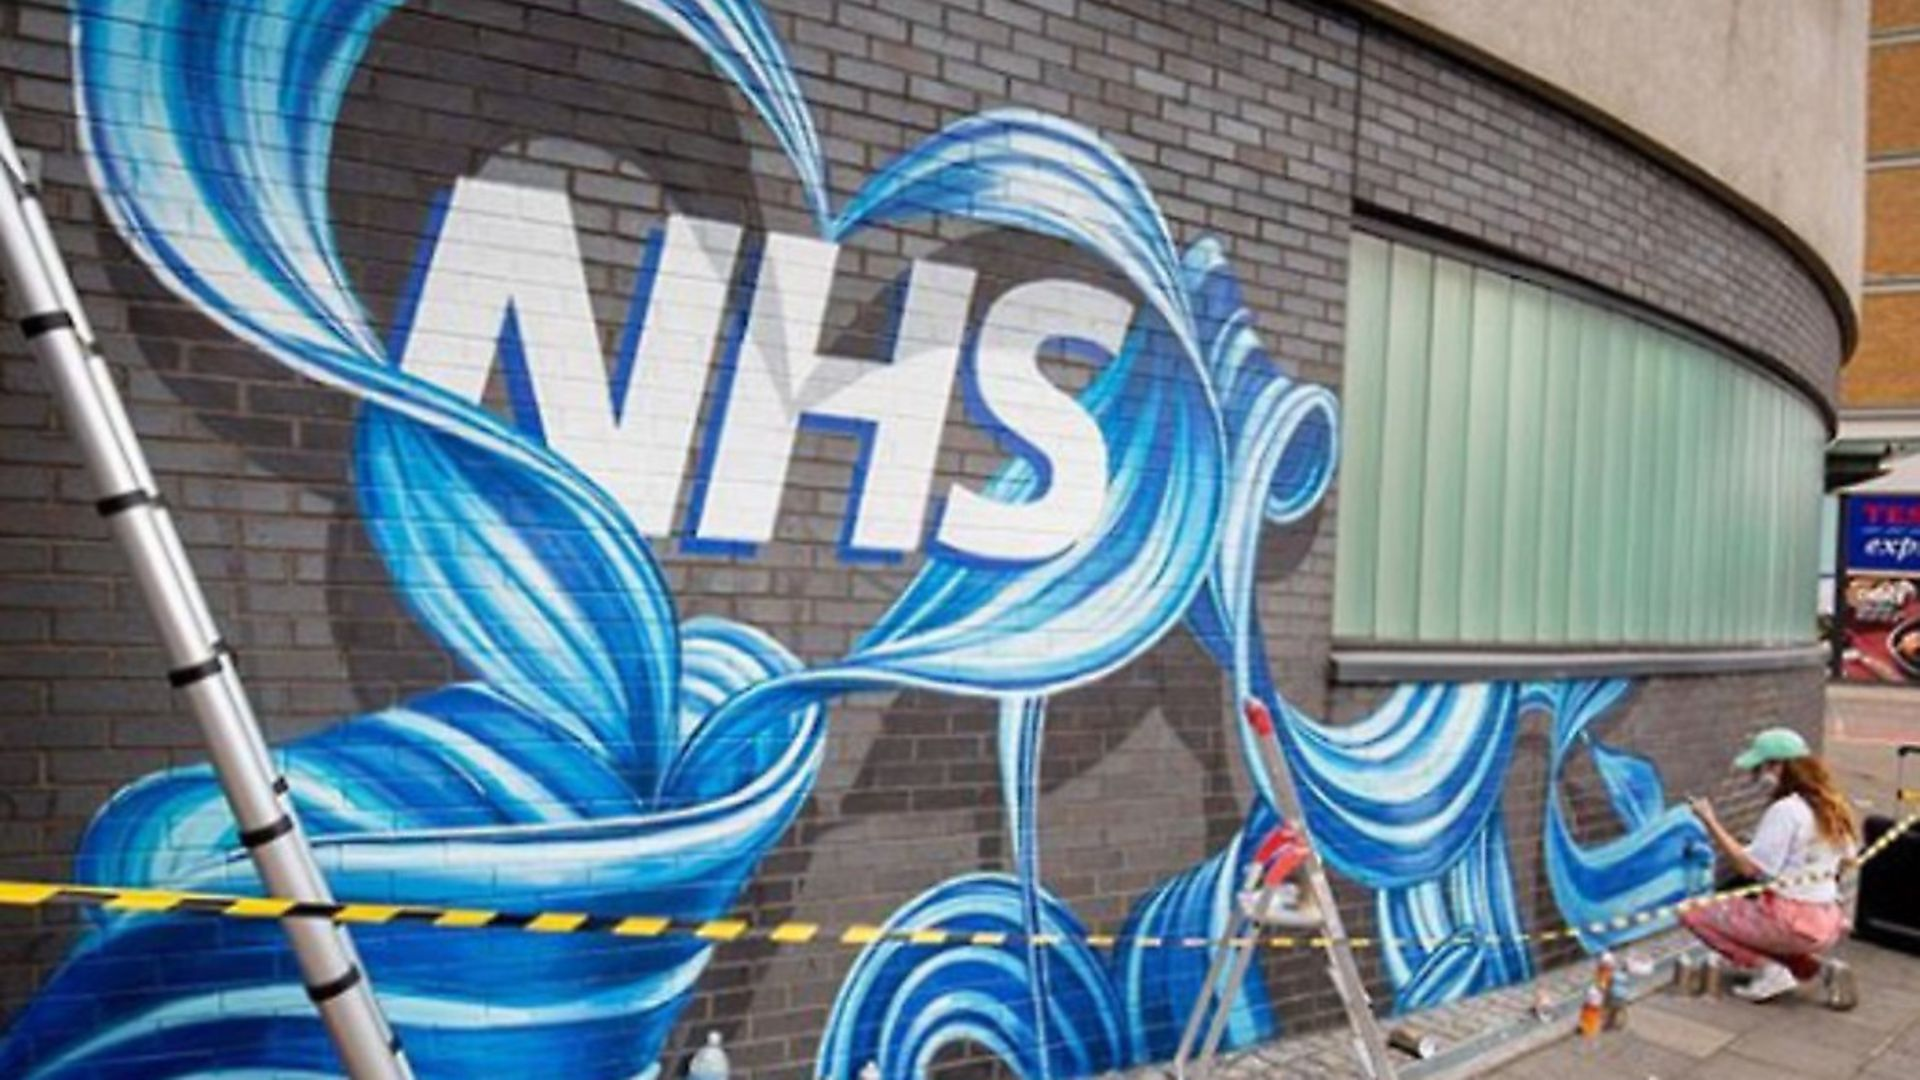 A mural of the NHS; picture source: Rosie Woods - Credit: Rosie Woods